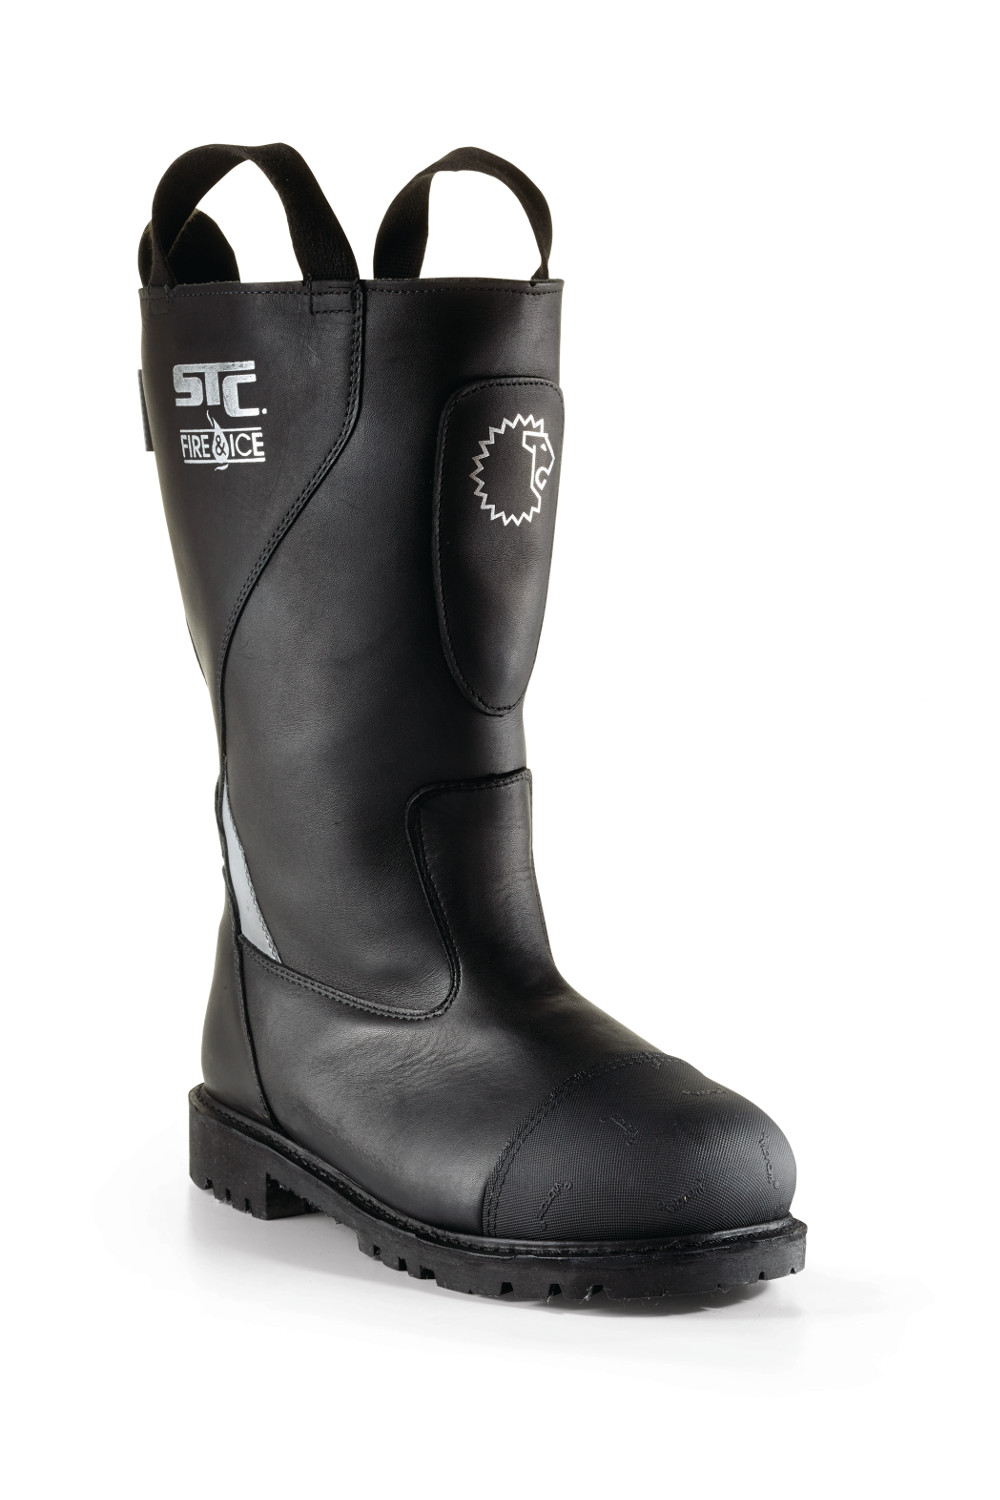 RUGGED STRUCTURAL FIREFIGHTING BOOTS